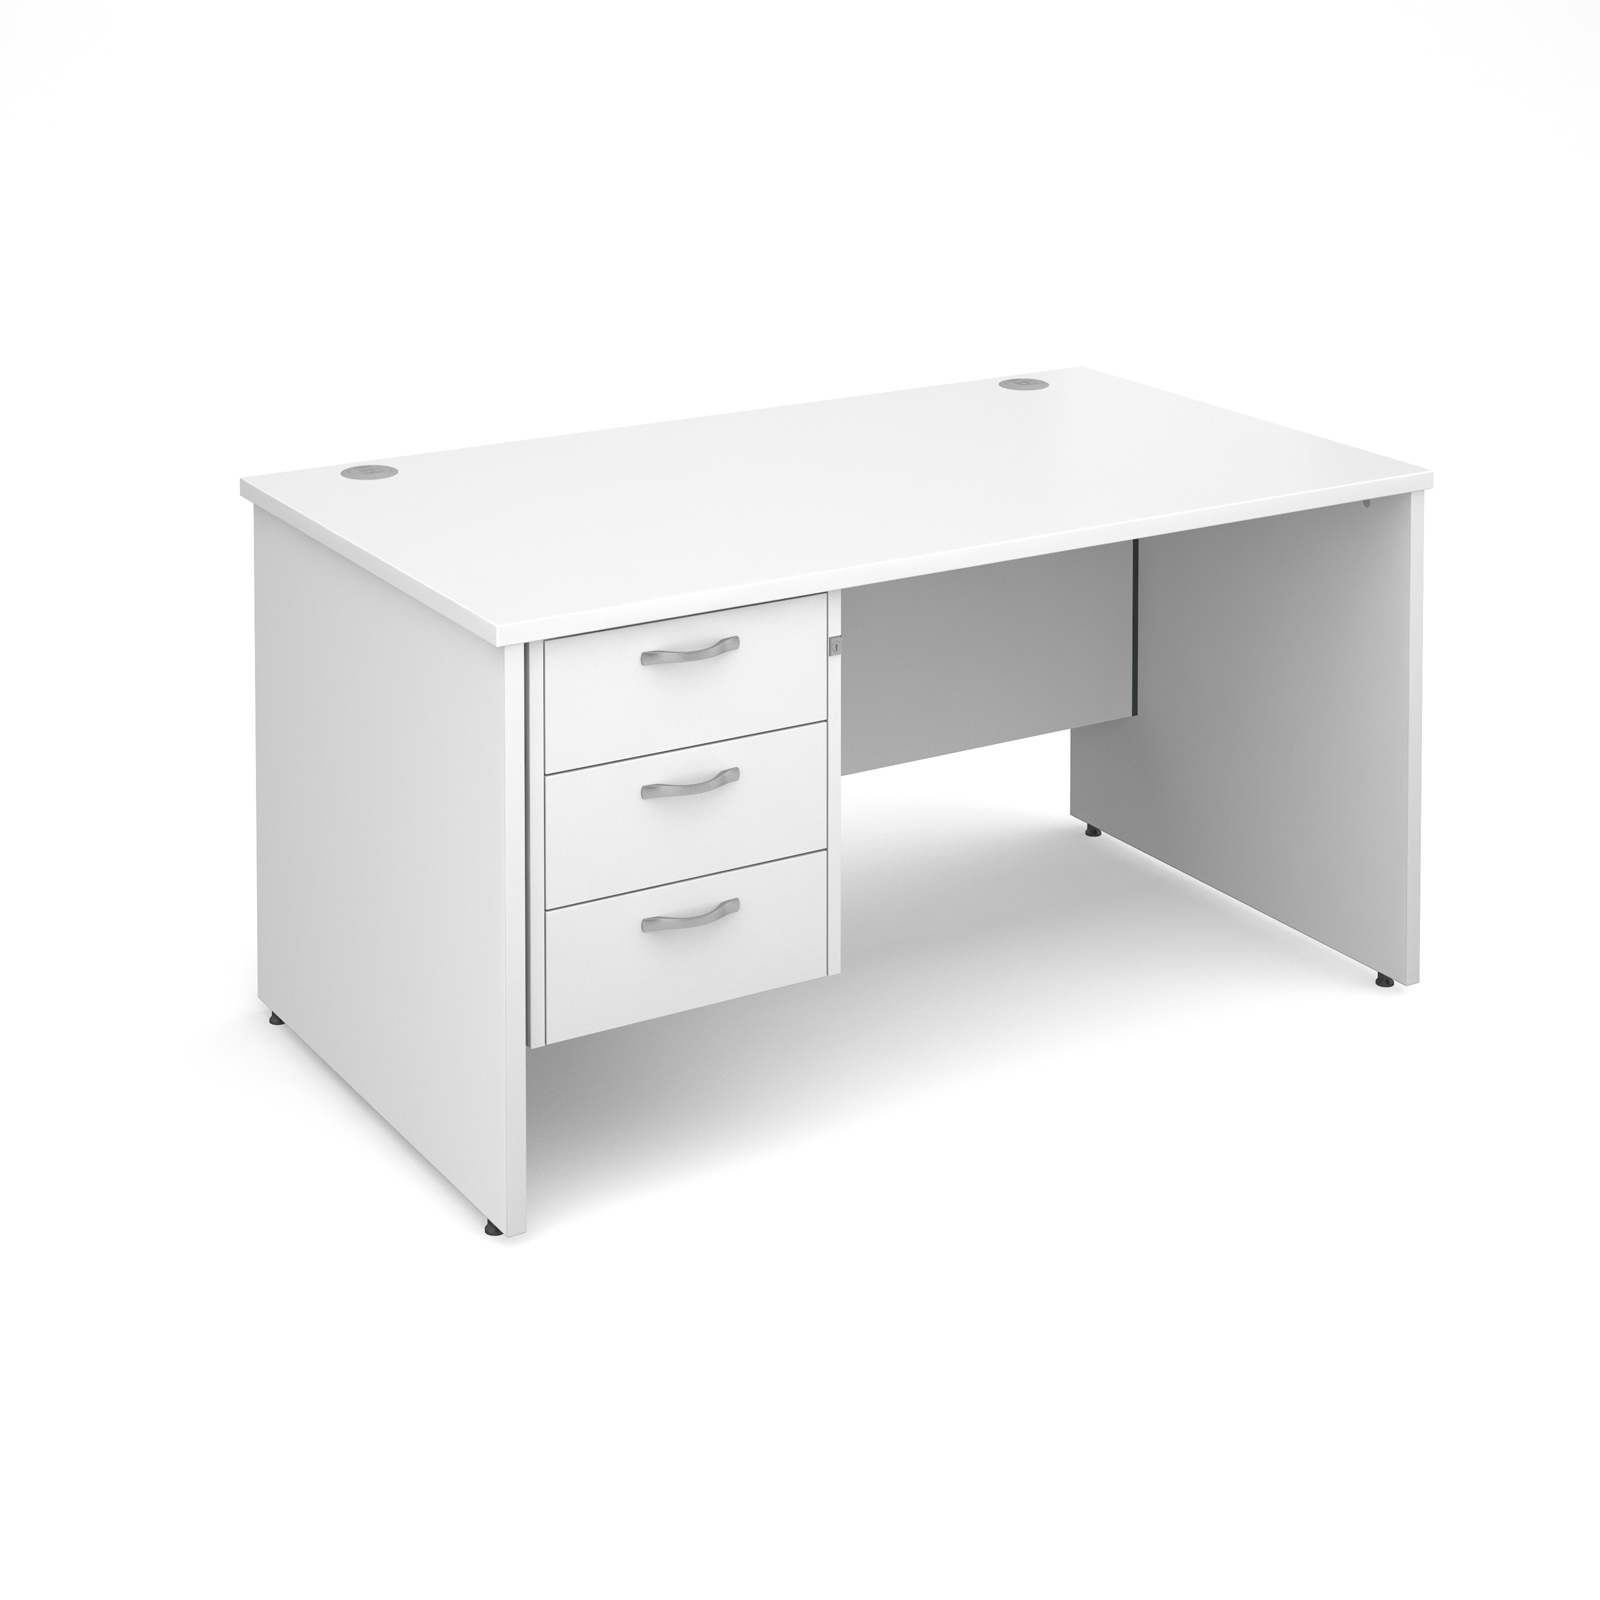 Desk With 3 Drawer Pedestal 1400mm